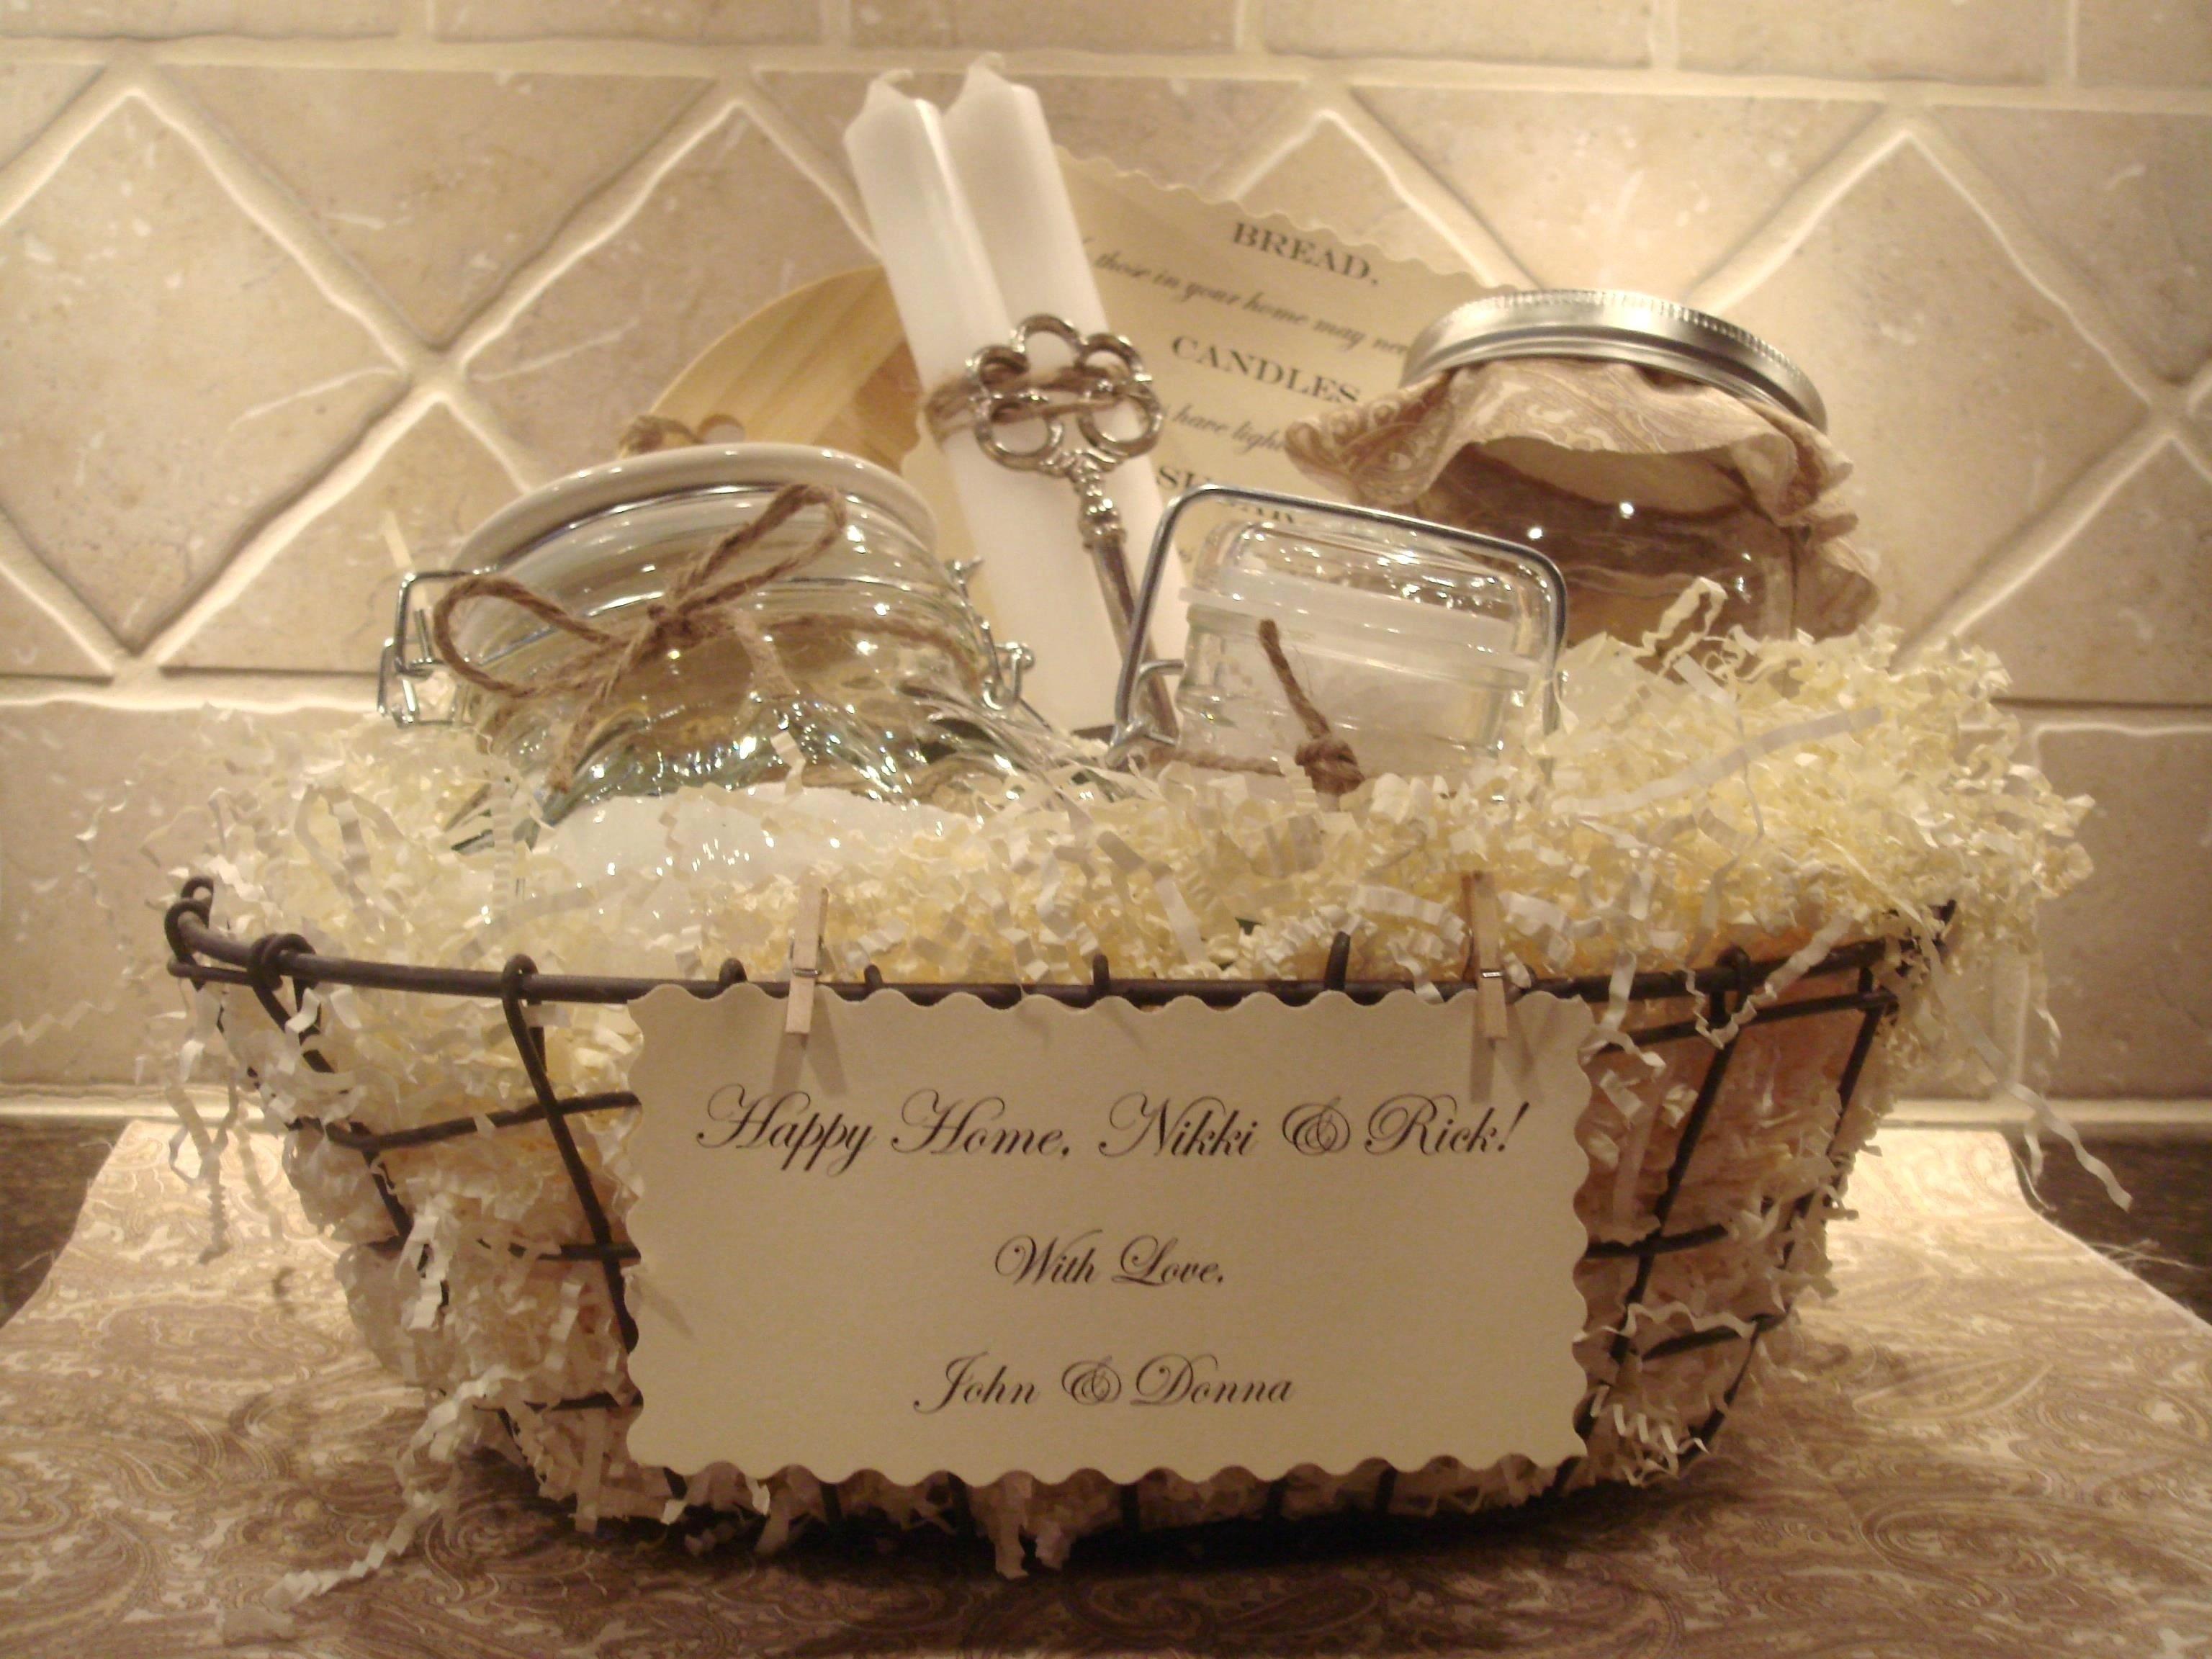 10 Attractive Housewarming Gift Ideas For Couple housewarming gift ideas for couple in couples inspirations cool 1 2021